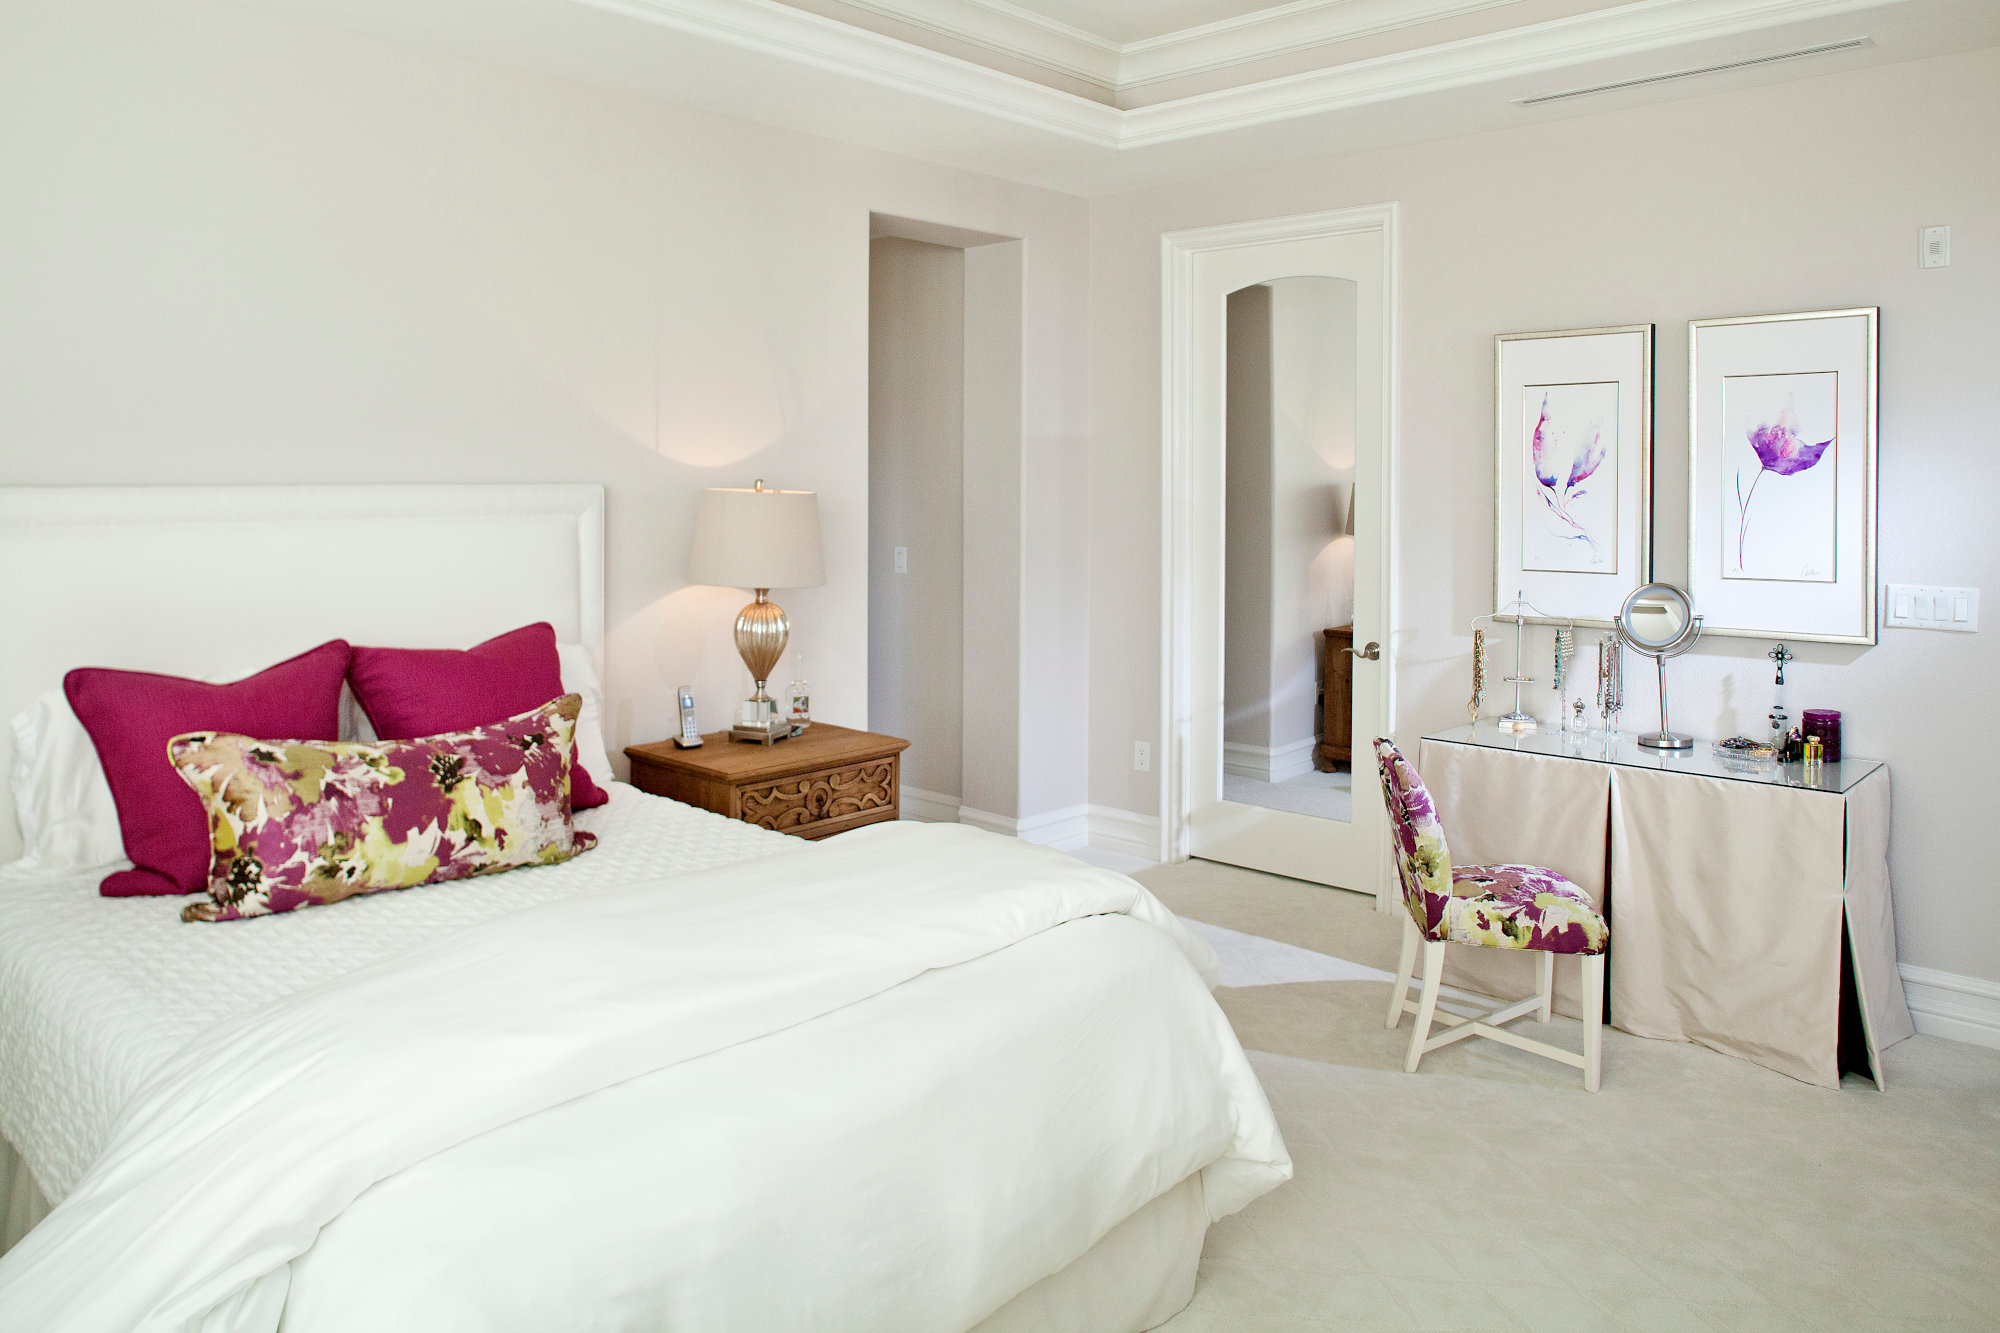 Bright white master bedroom fascia pillows and chair with crown molding and make up table.